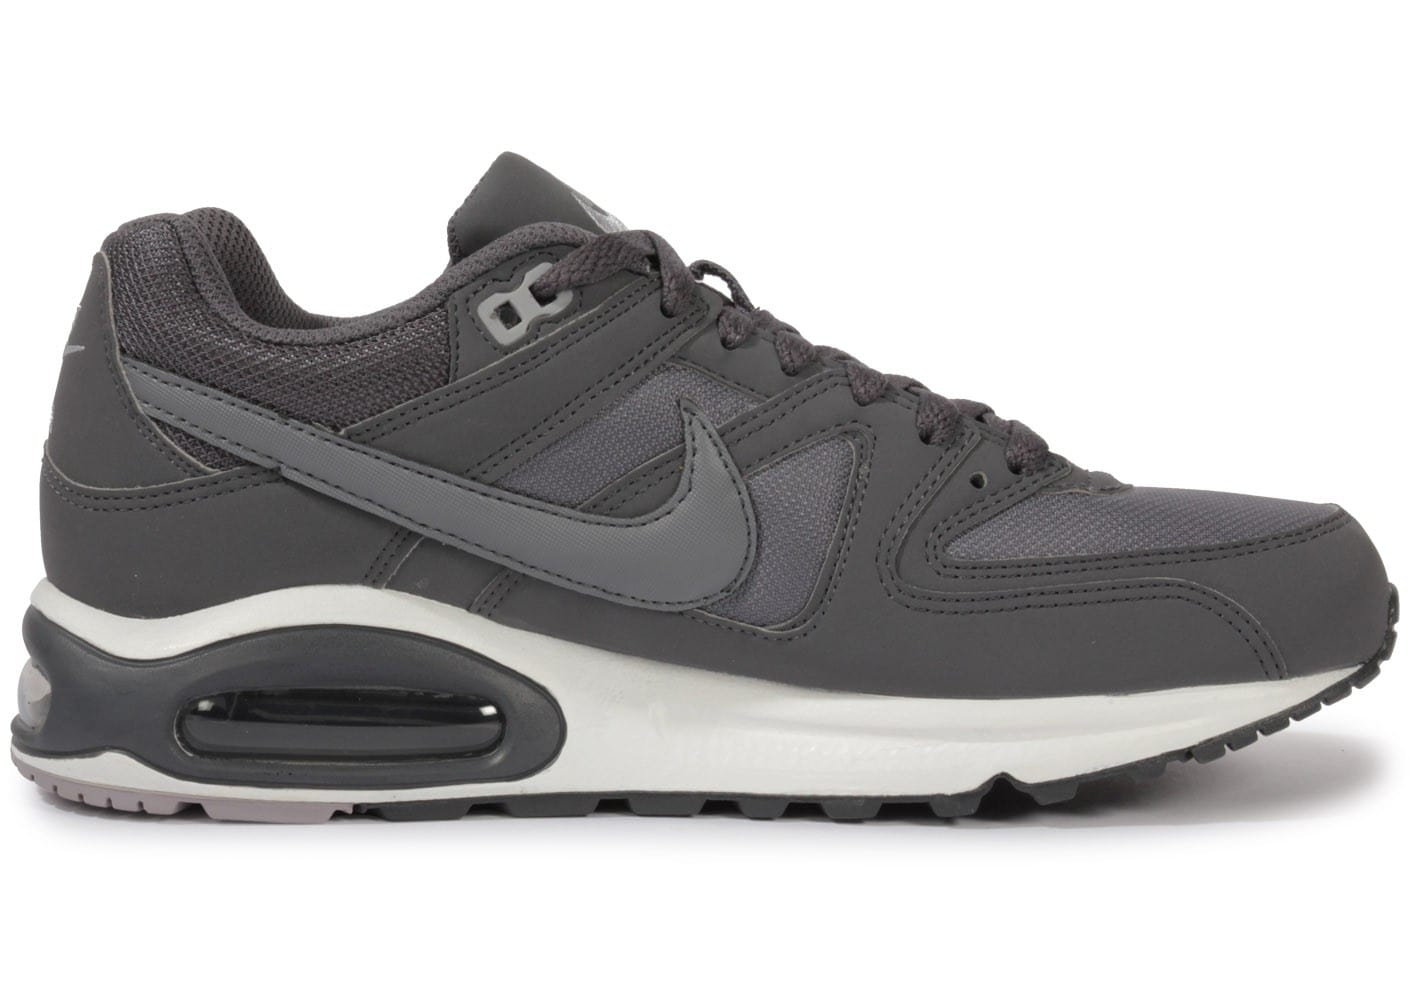 nike air max command grise chaussures homme chausport. Black Bedroom Furniture Sets. Home Design Ideas